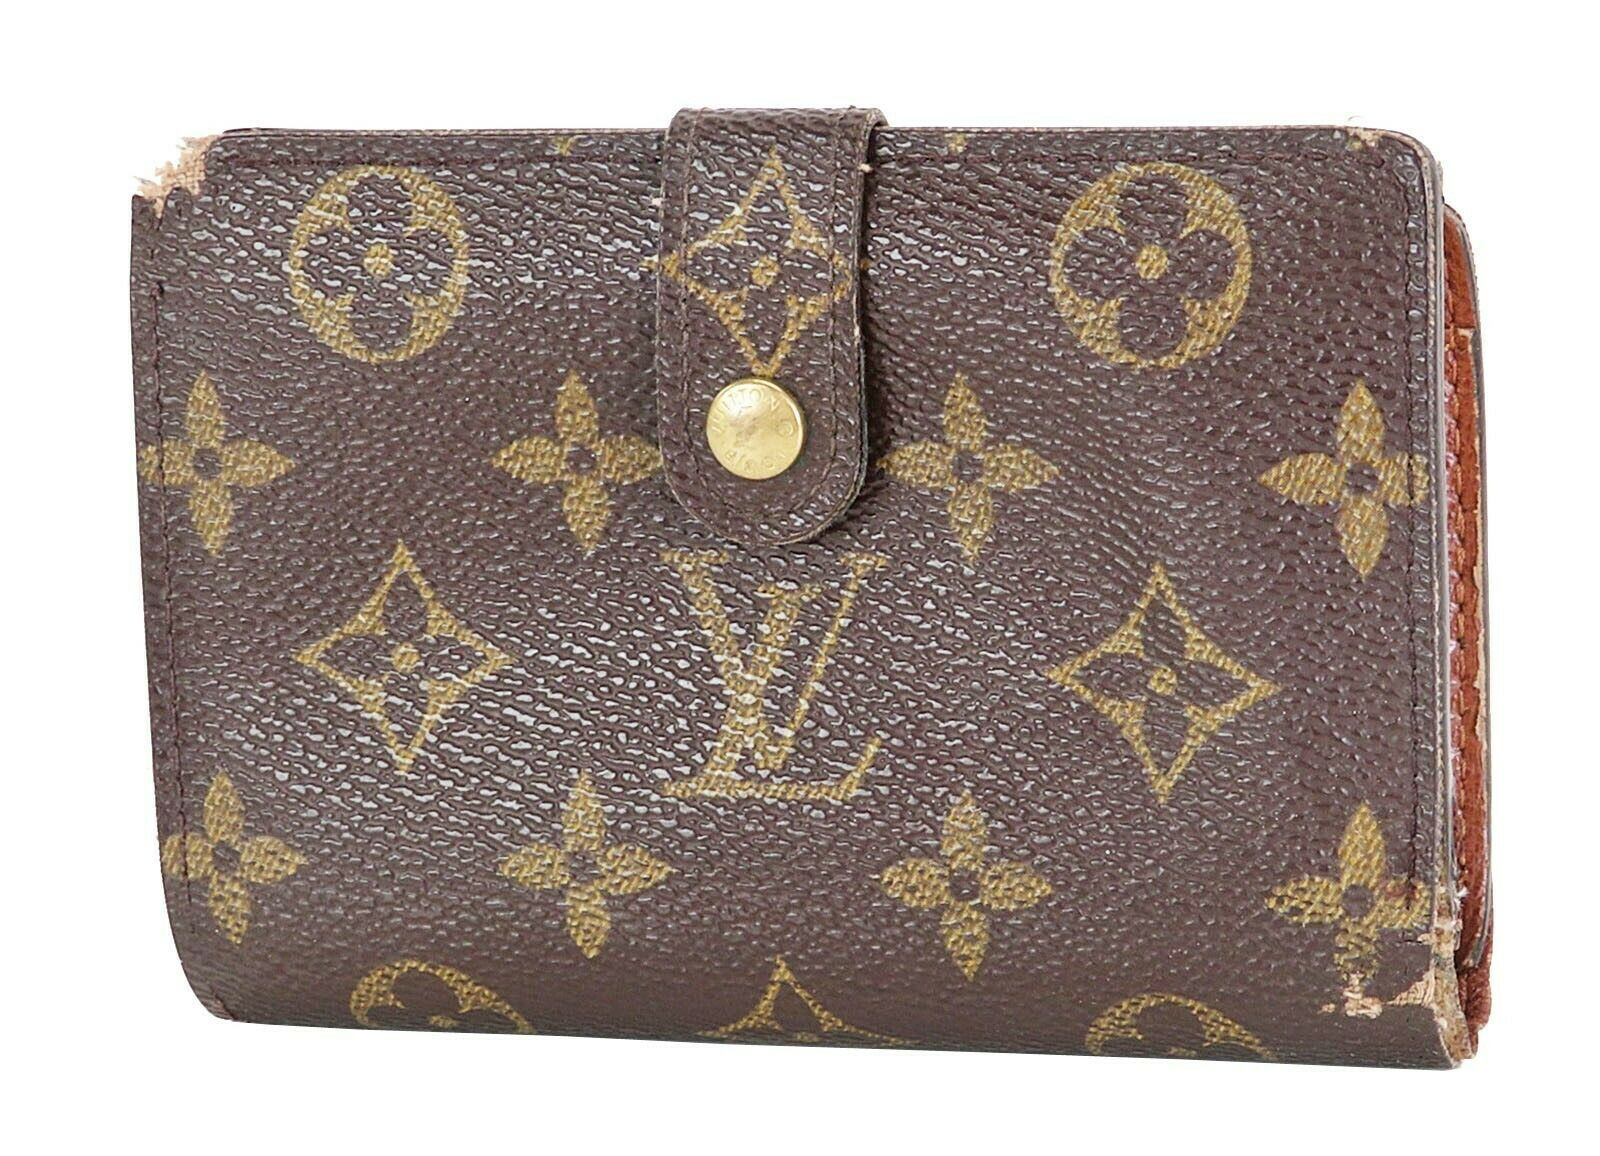 Primary image for Authentic LOUIS VUITTON French Kisslock Monogram Wallet Coin Purse #28533